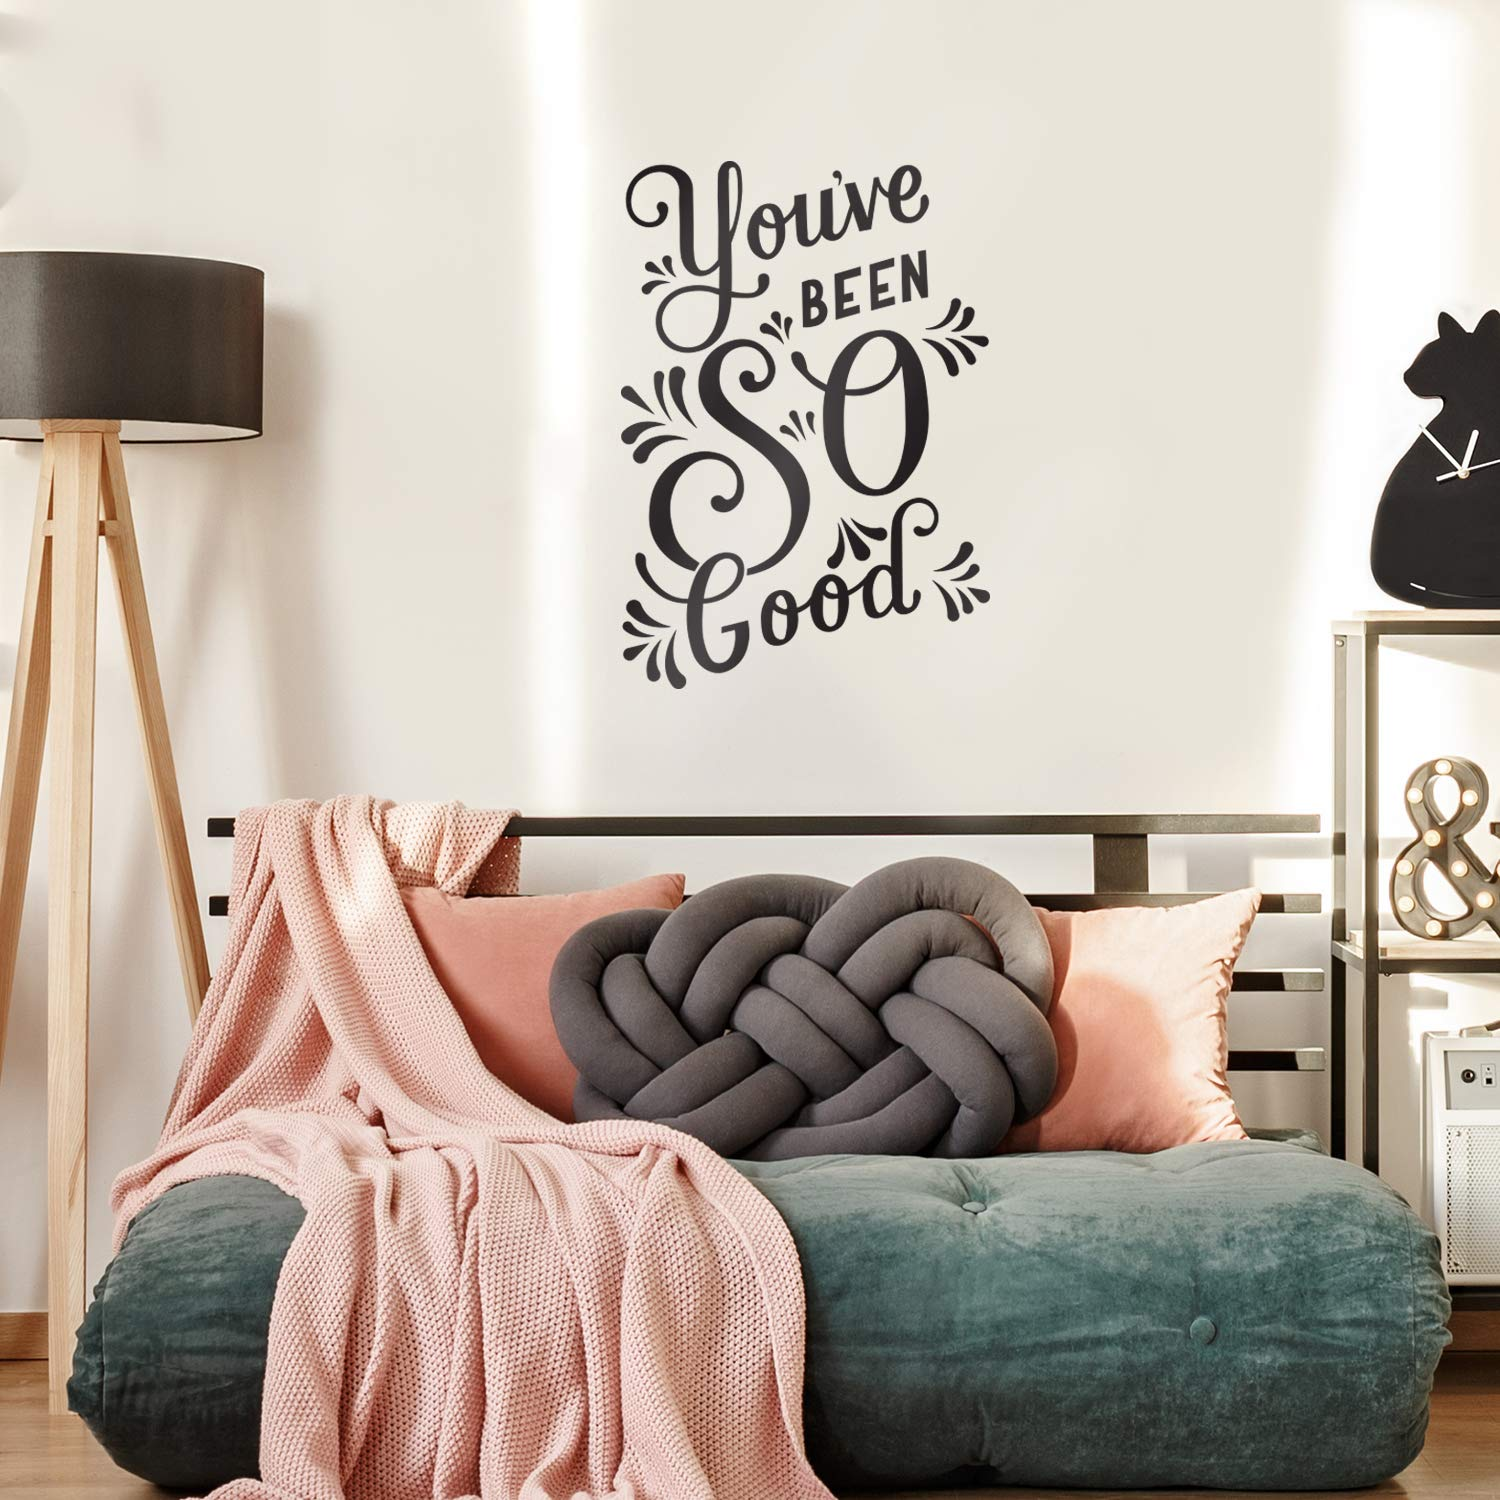 Vinyl Wall Art Decal Inspirational Trendy Cursive Workplace Apartment Living Room Decor 31 x 22, White Motivational Modern Home Office Bedroom Work Quote Youve Been So Good 31 x 22